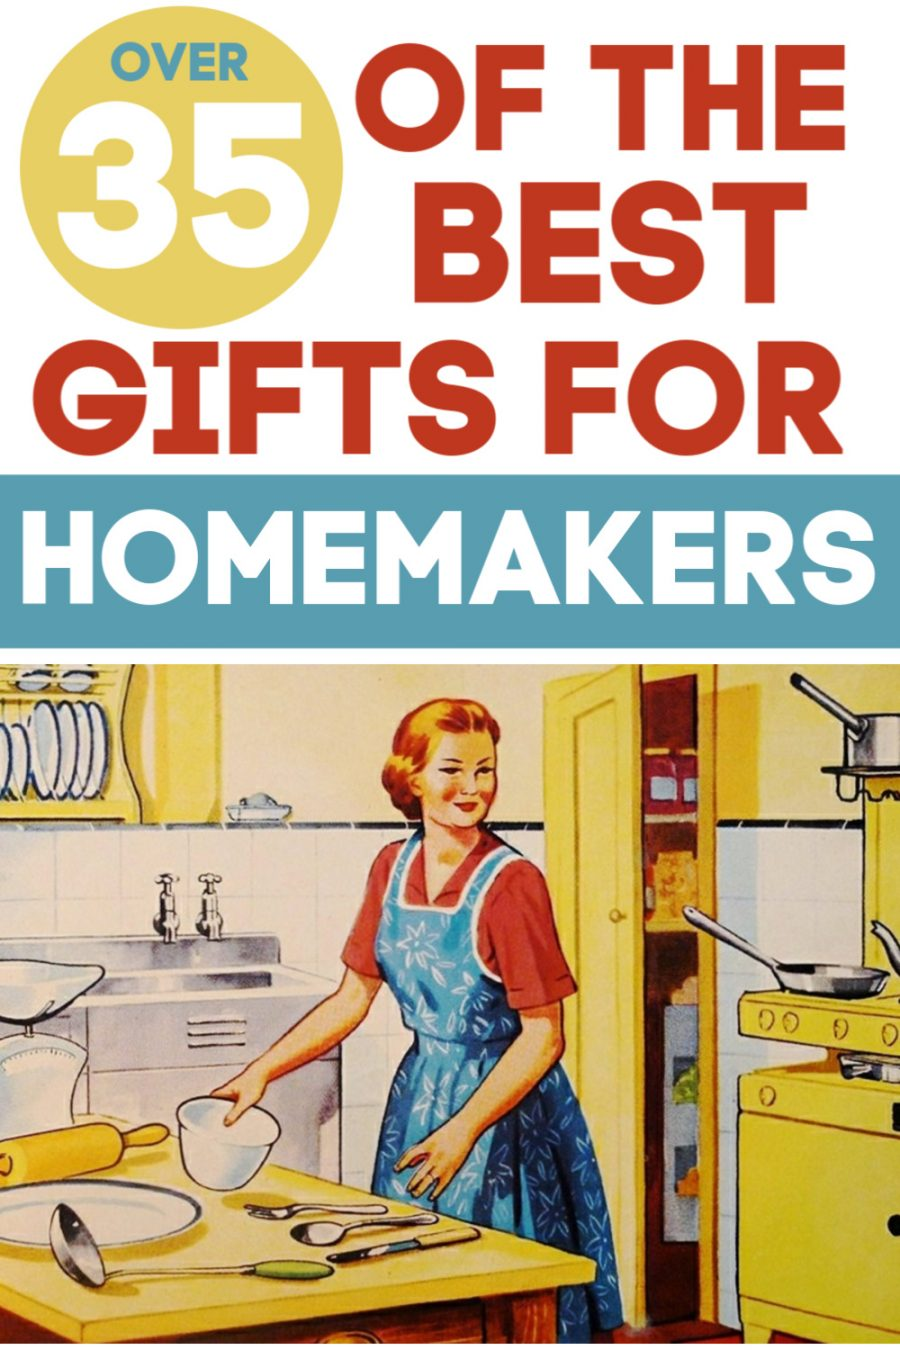 Over 35 of the Best Gifts for Homemakers